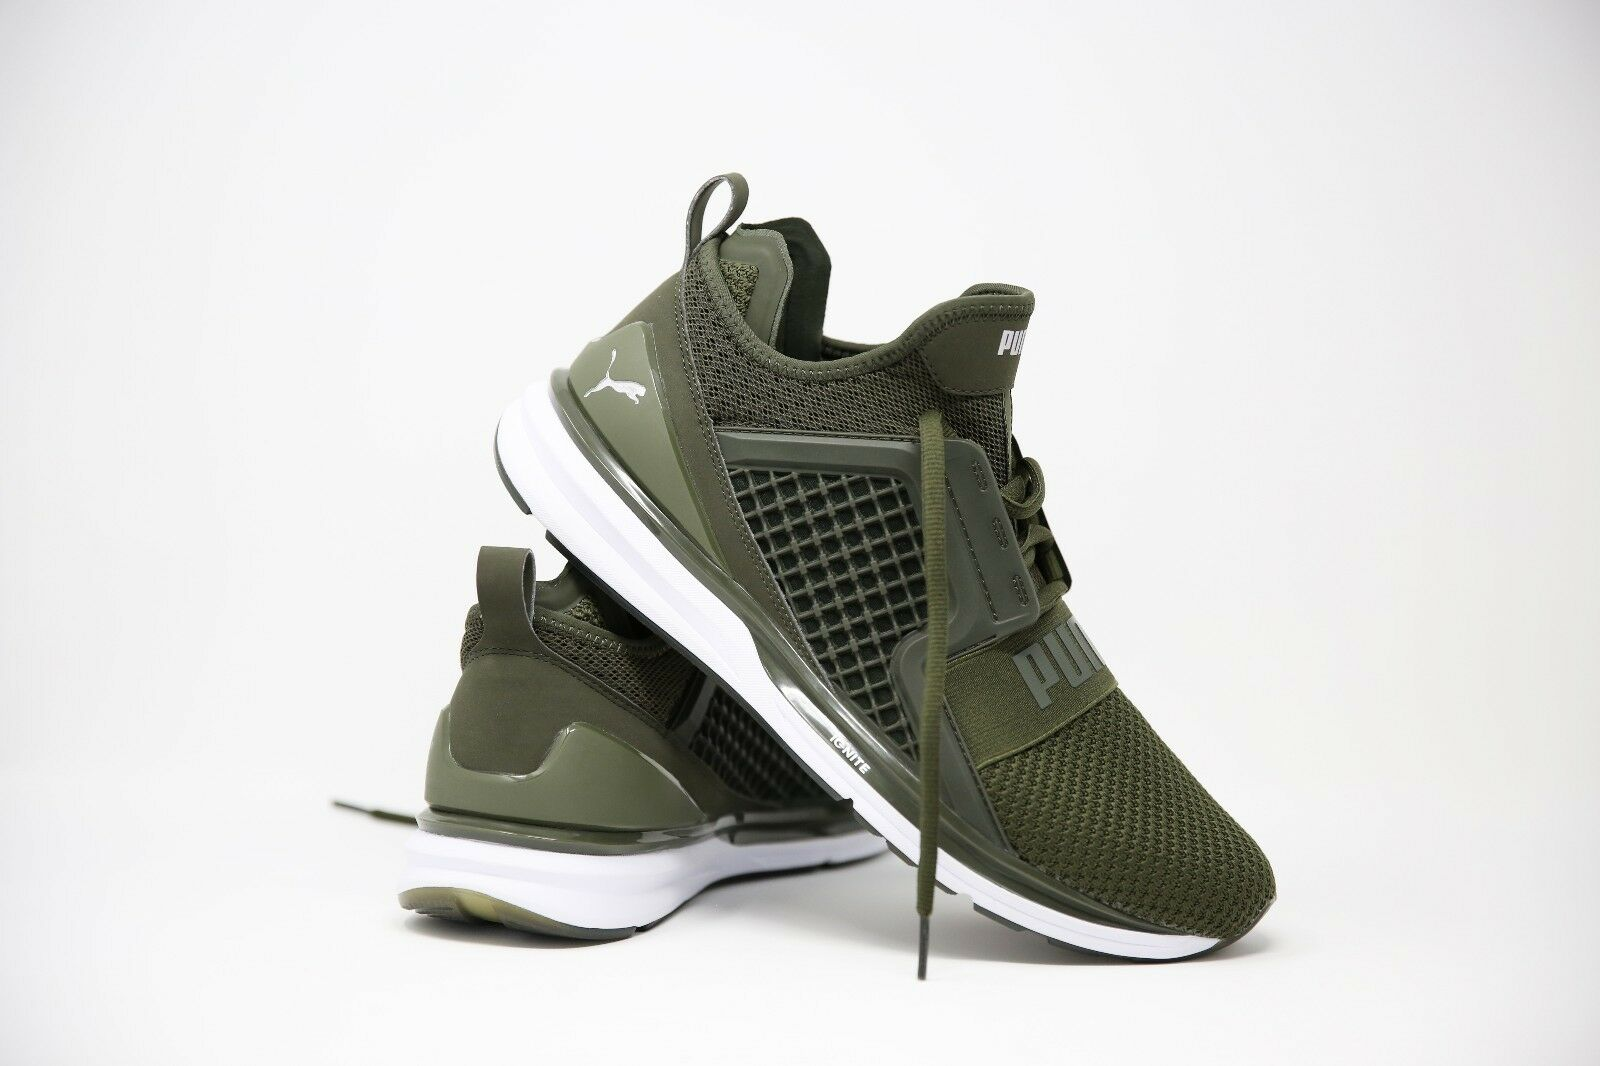 Puma Ignite Dark Green Trainers Size UK 9.5 EUR 44